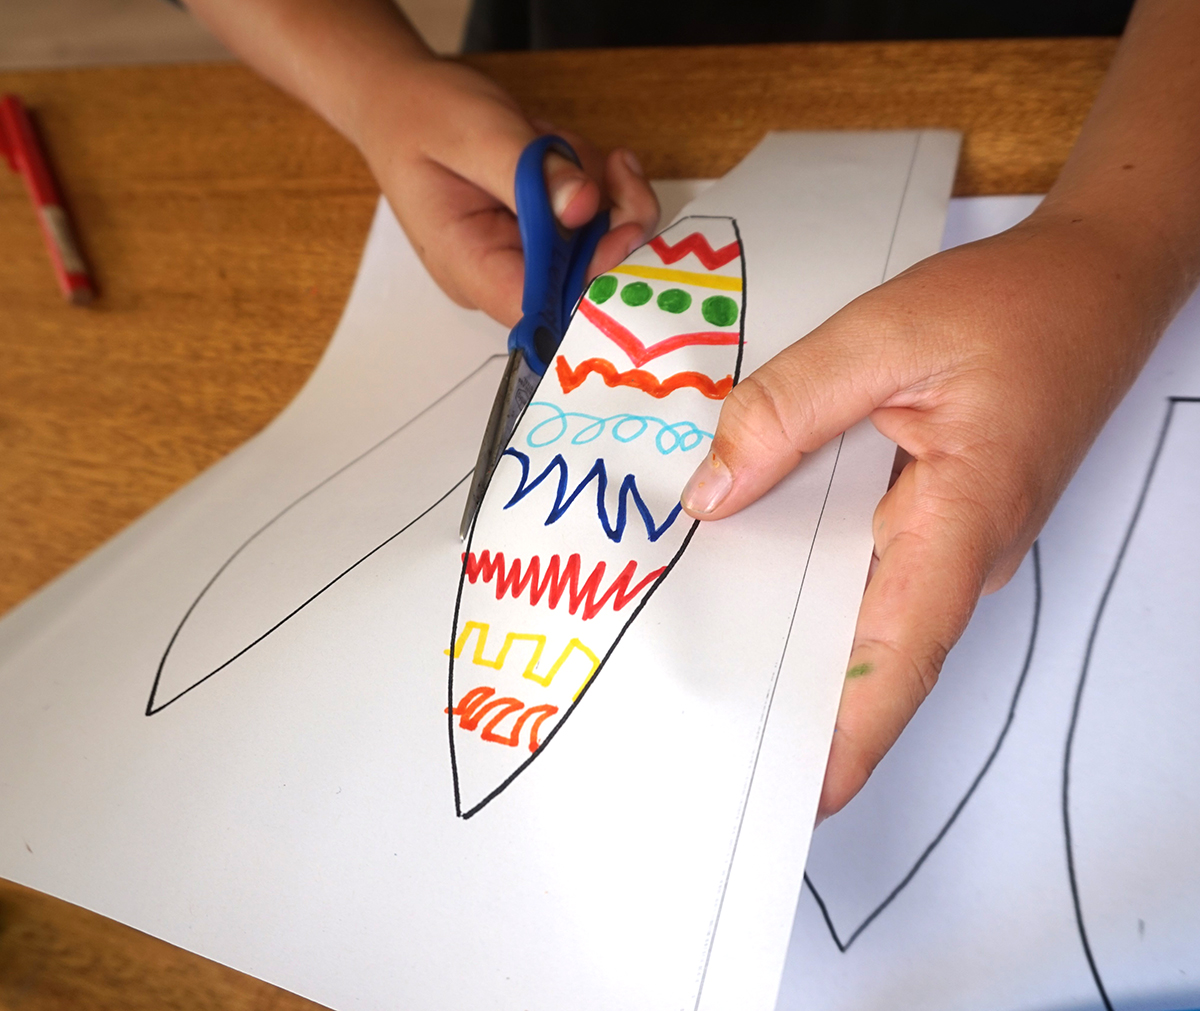 Boy using scissors to cut out paper bunny ear template.